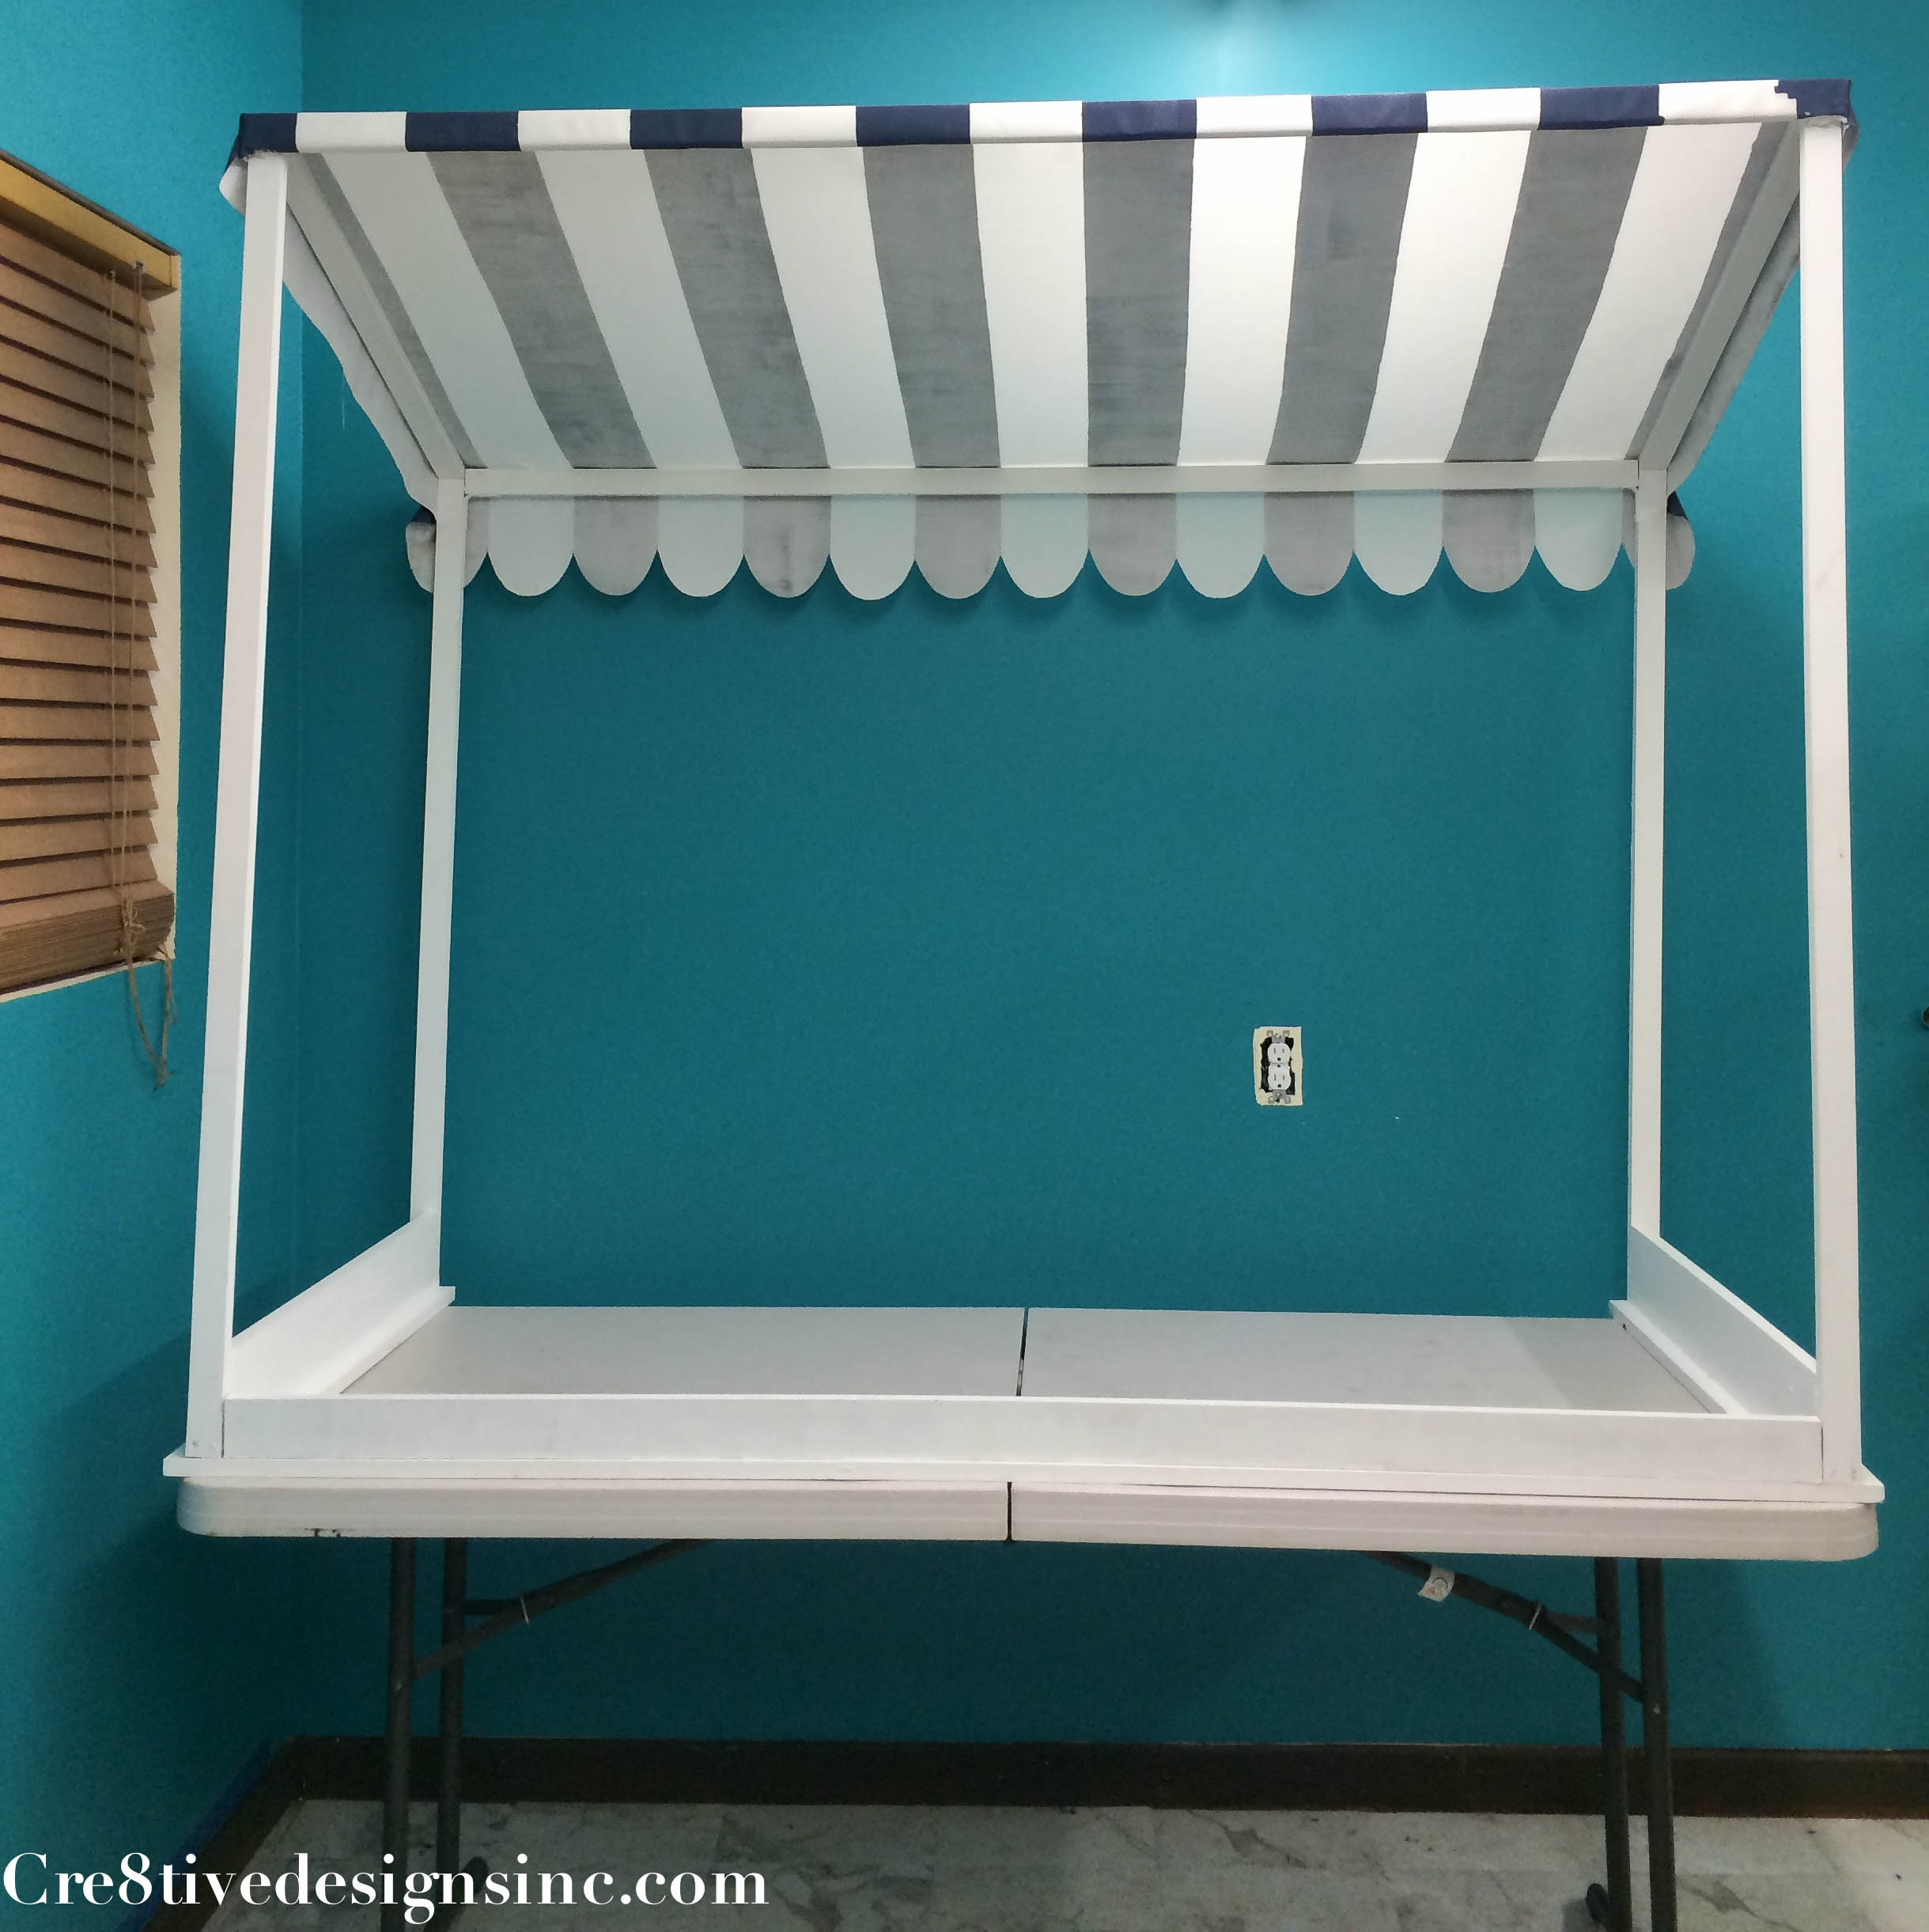 backside of the table top canopy & How to make a table top canopy - Cre8tive Designs Inc.